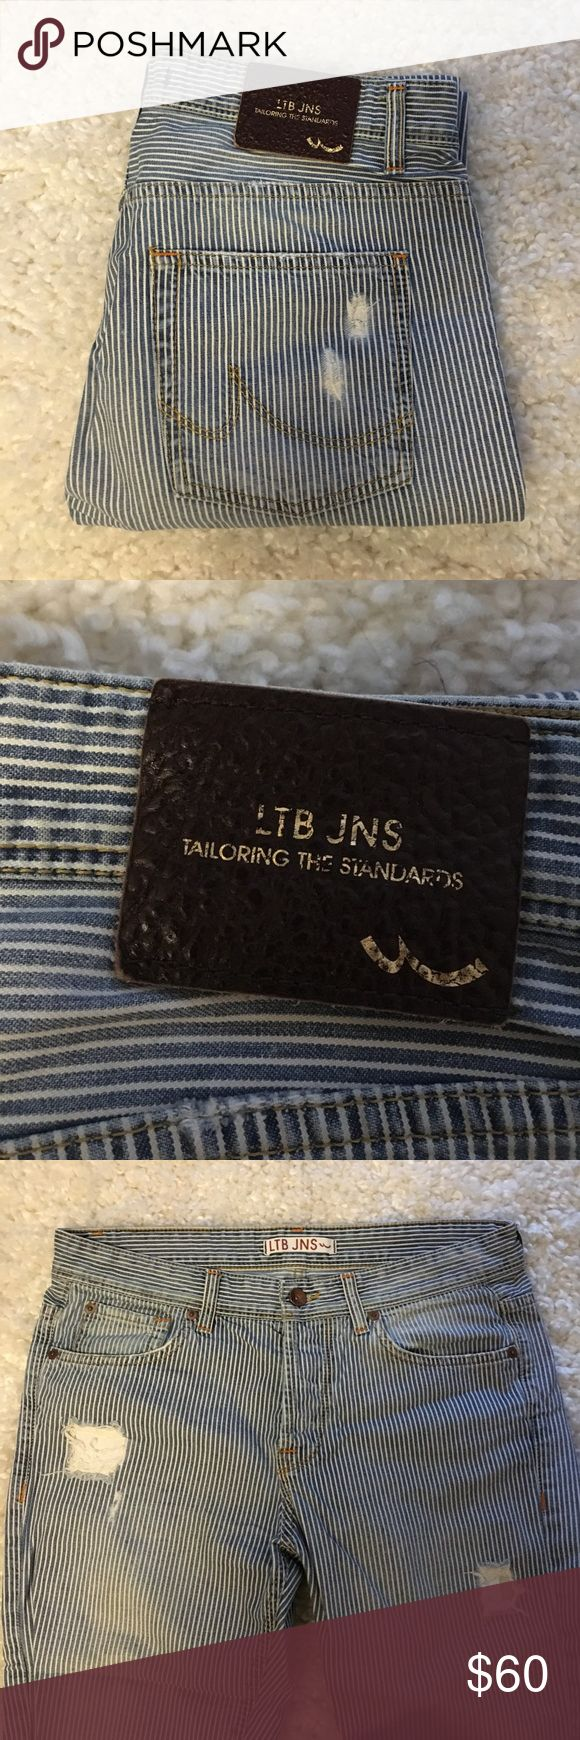 LTB jeans Boyfriend Tailoring the standards 🕶 LTB Jeans white and blue - Boyfriend. So comfortable. One of my favorite jeans ever. Worn but in great shape still. Great material. LTB JNS Jeans Boyfriend